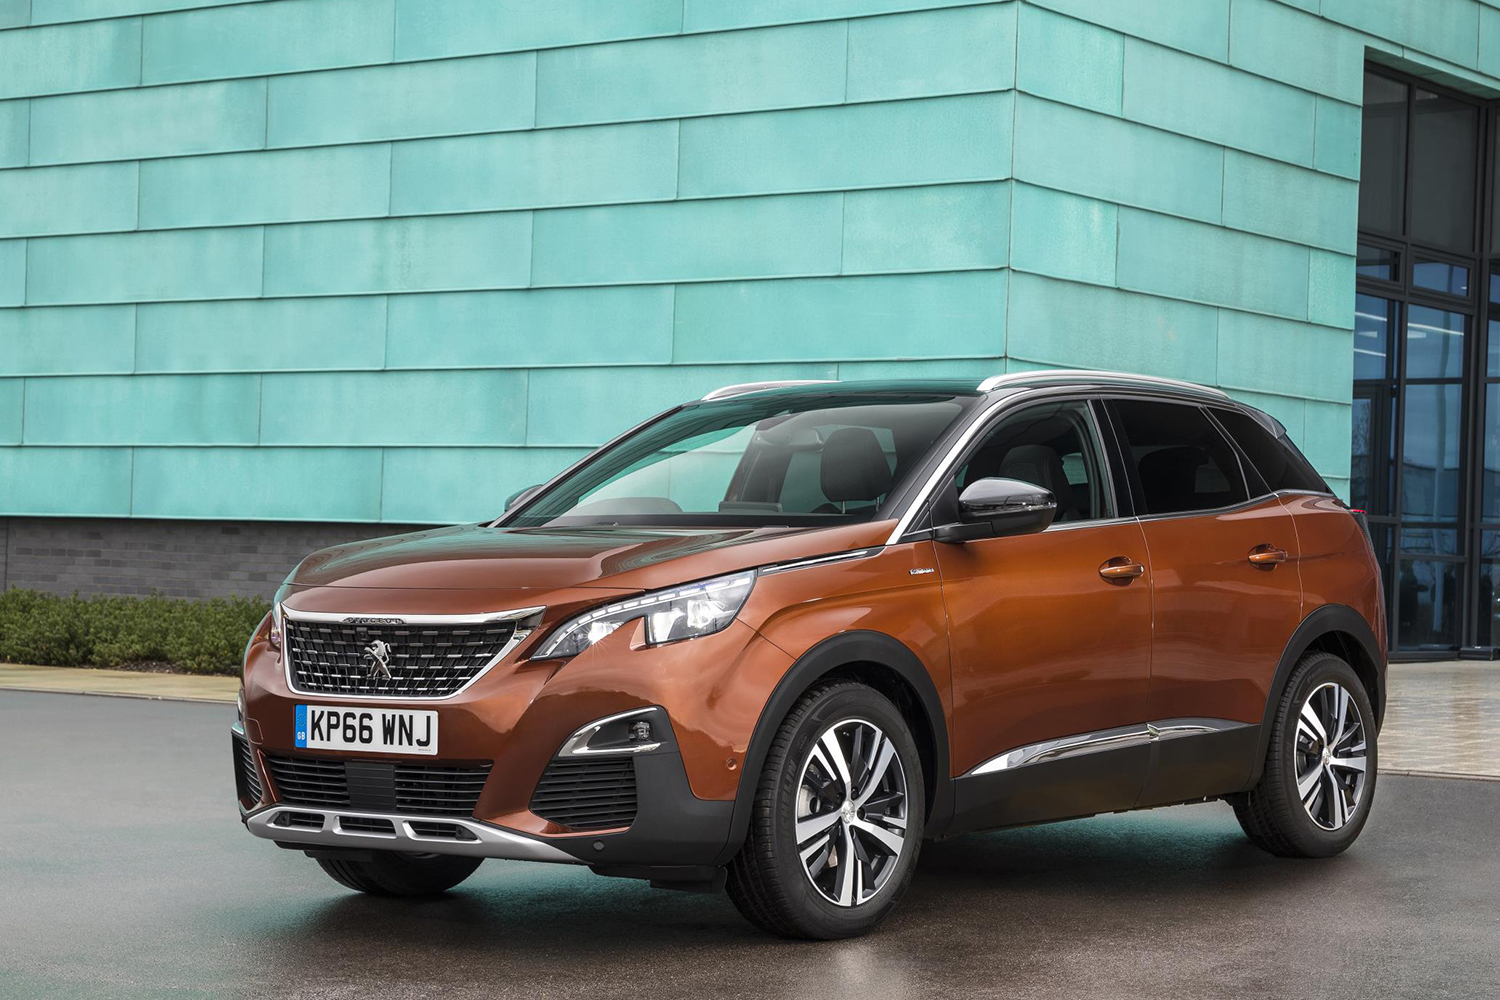 peugeot 3008 gt line puretech 130 auto review. Black Bedroom Furniture Sets. Home Design Ideas